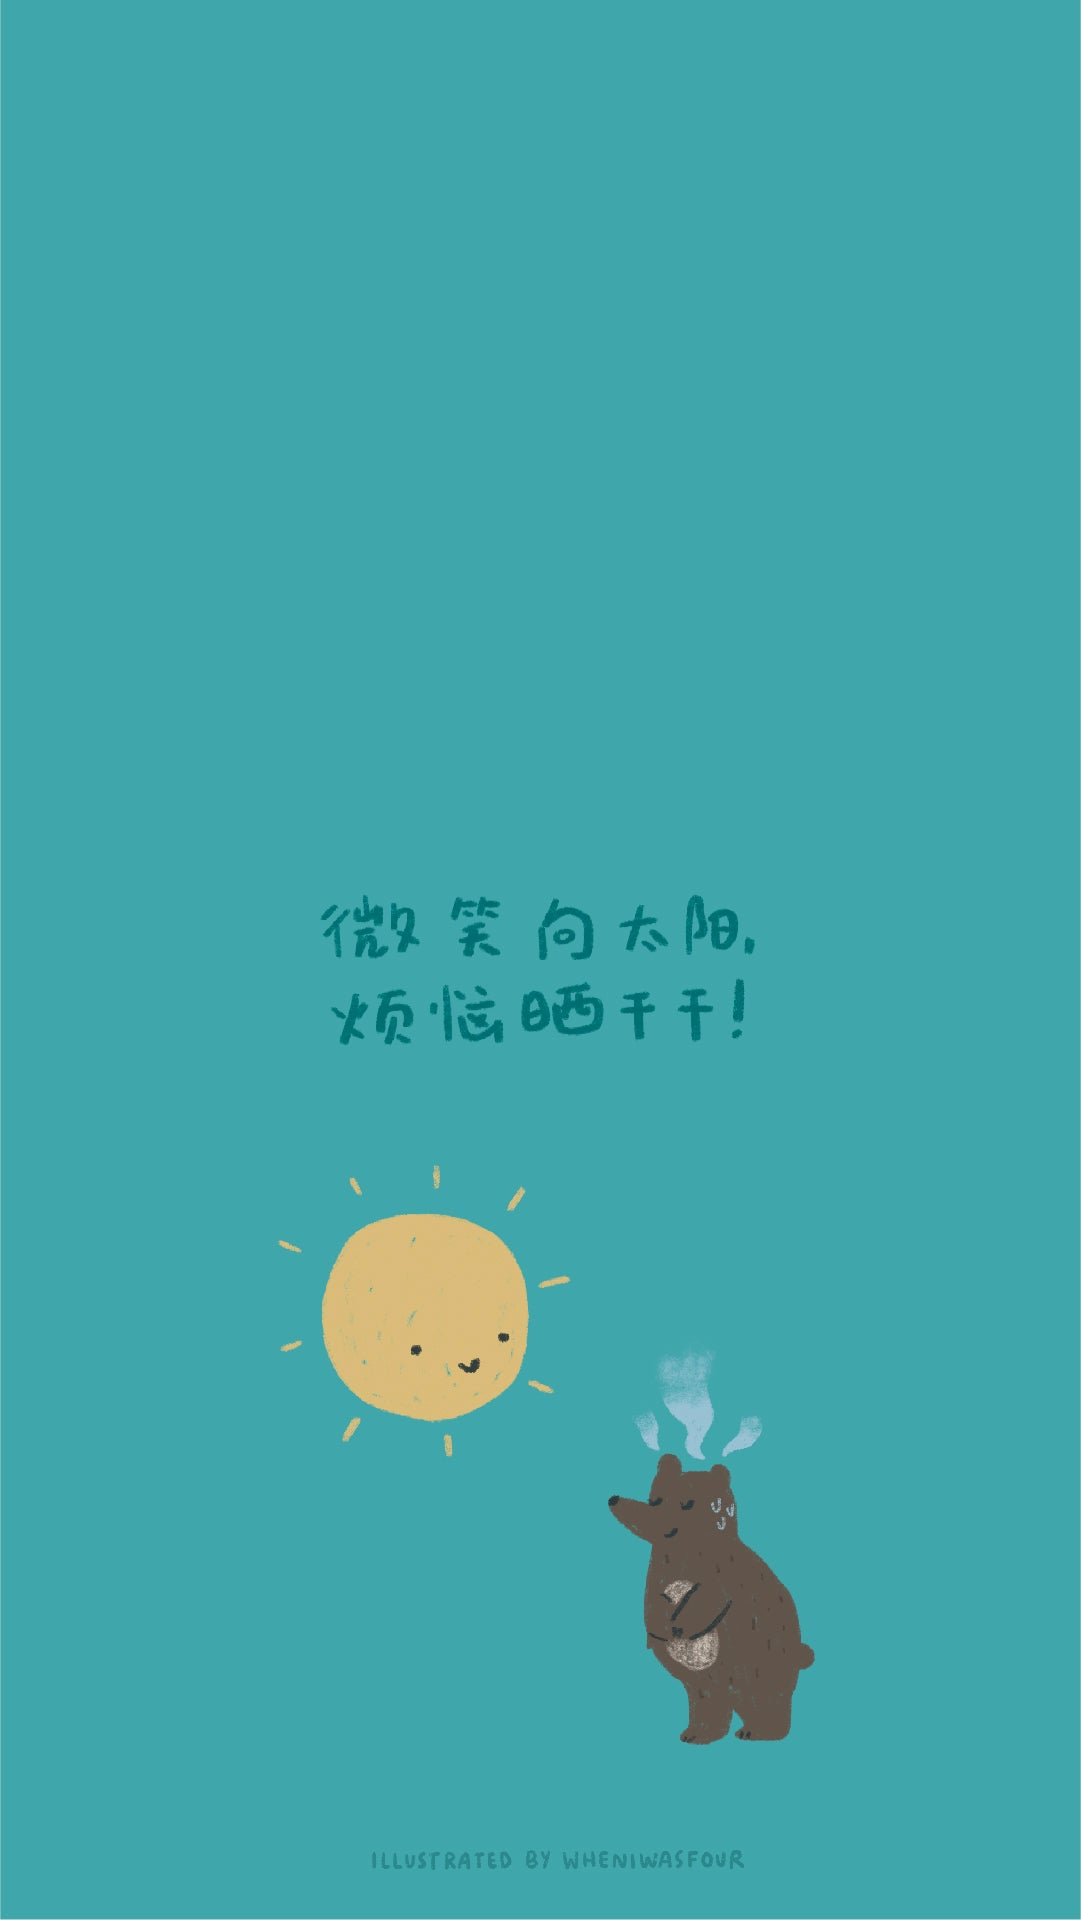 phone wallpaper of a digital illustration of a chinese verse about looking up at the sun and making your worries and troubles disappear